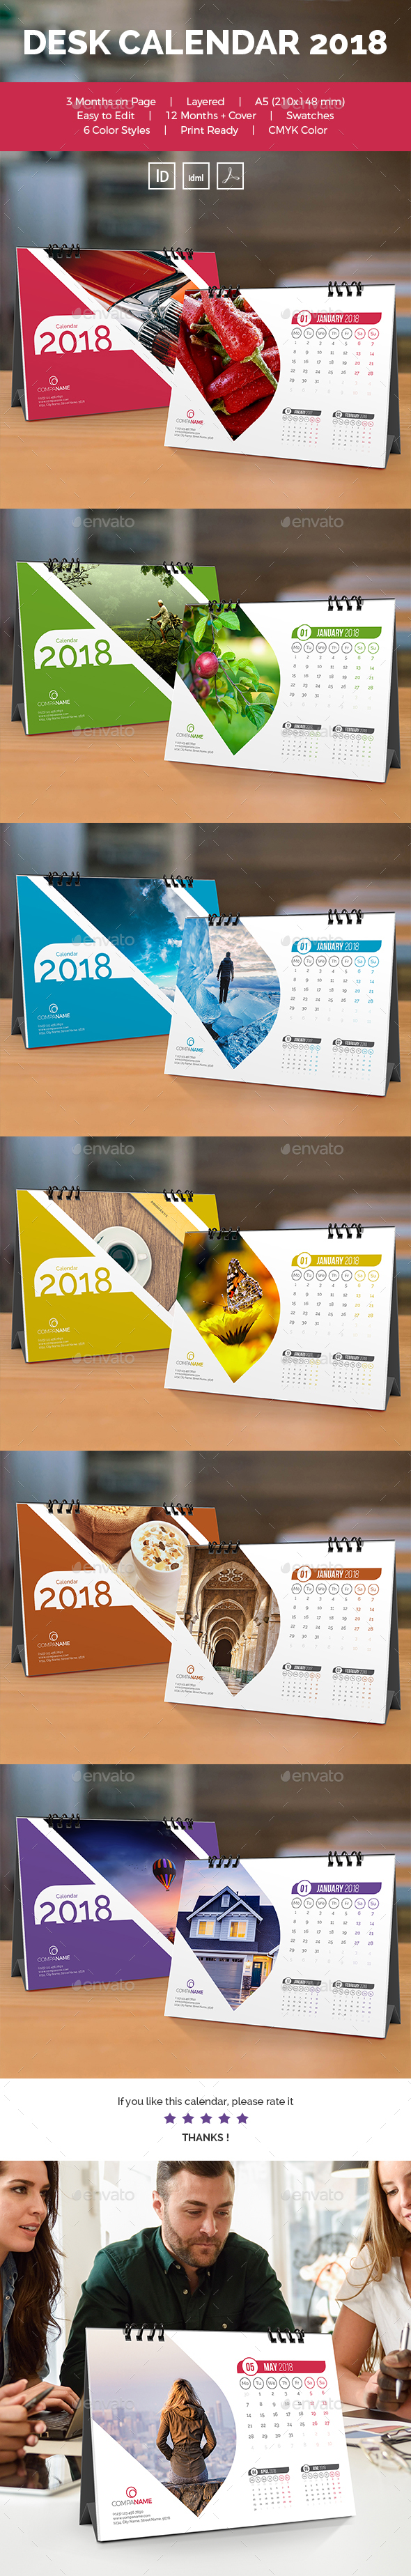 GraphicRiver Desk Calendar 2018 20961989